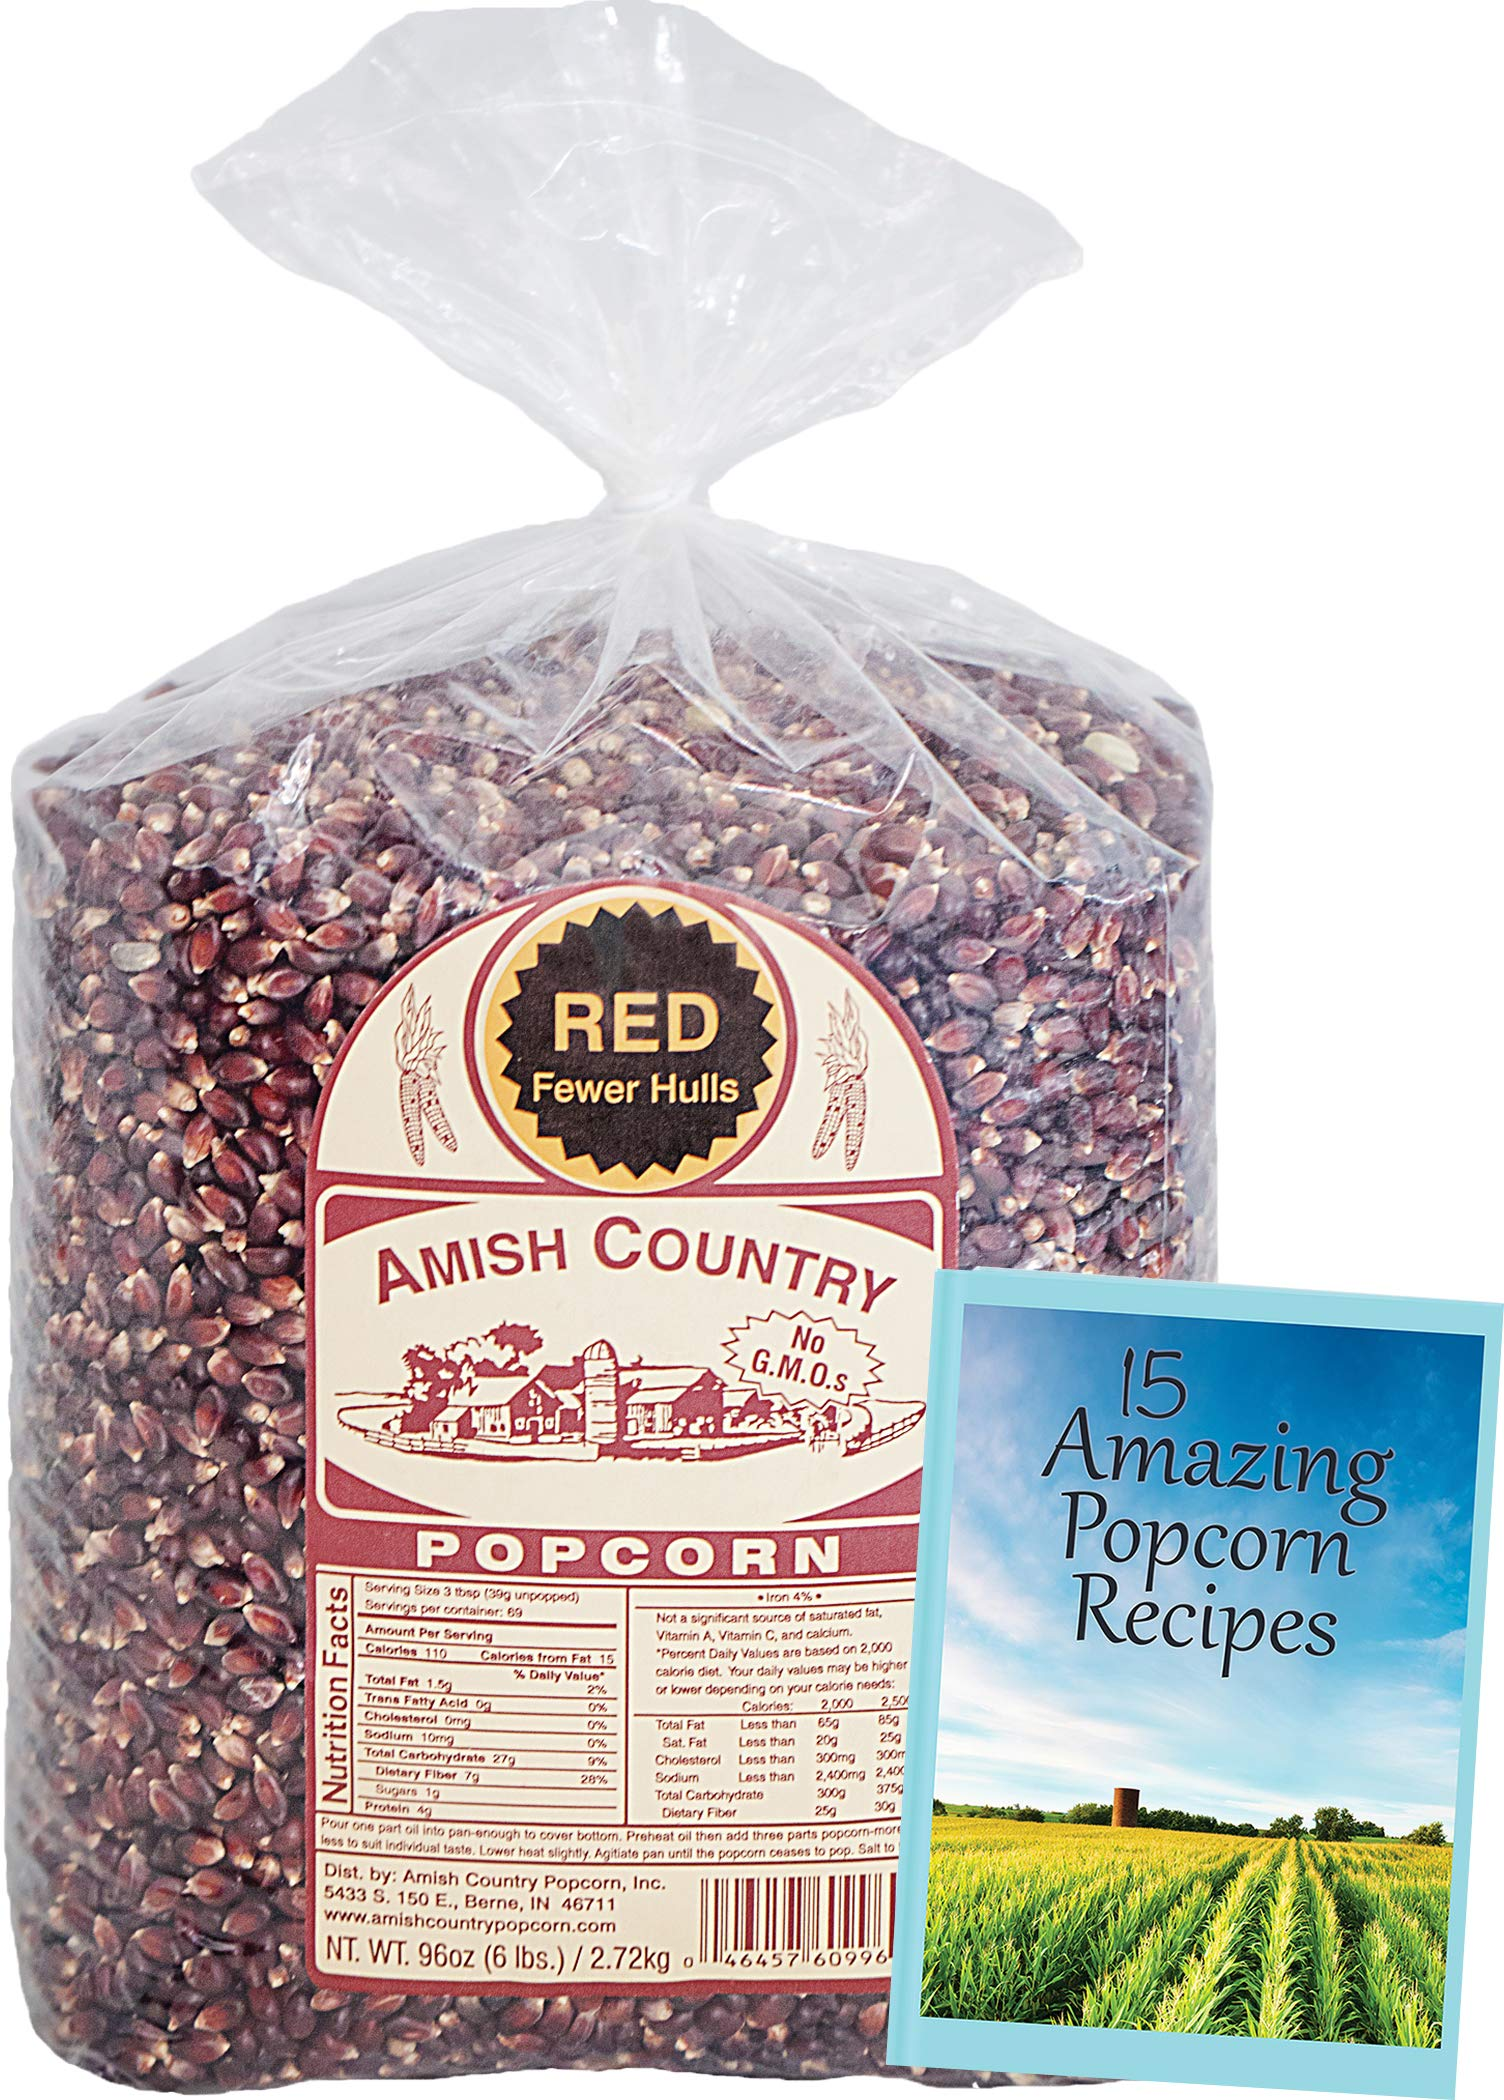 Amish Country Popcorn - Red Popcorn (6 Pound Bag) - Old Fashioned, Non GMO, and Gluten Free - with Recipe Guide by Amish Country Popcorn (Image #2)